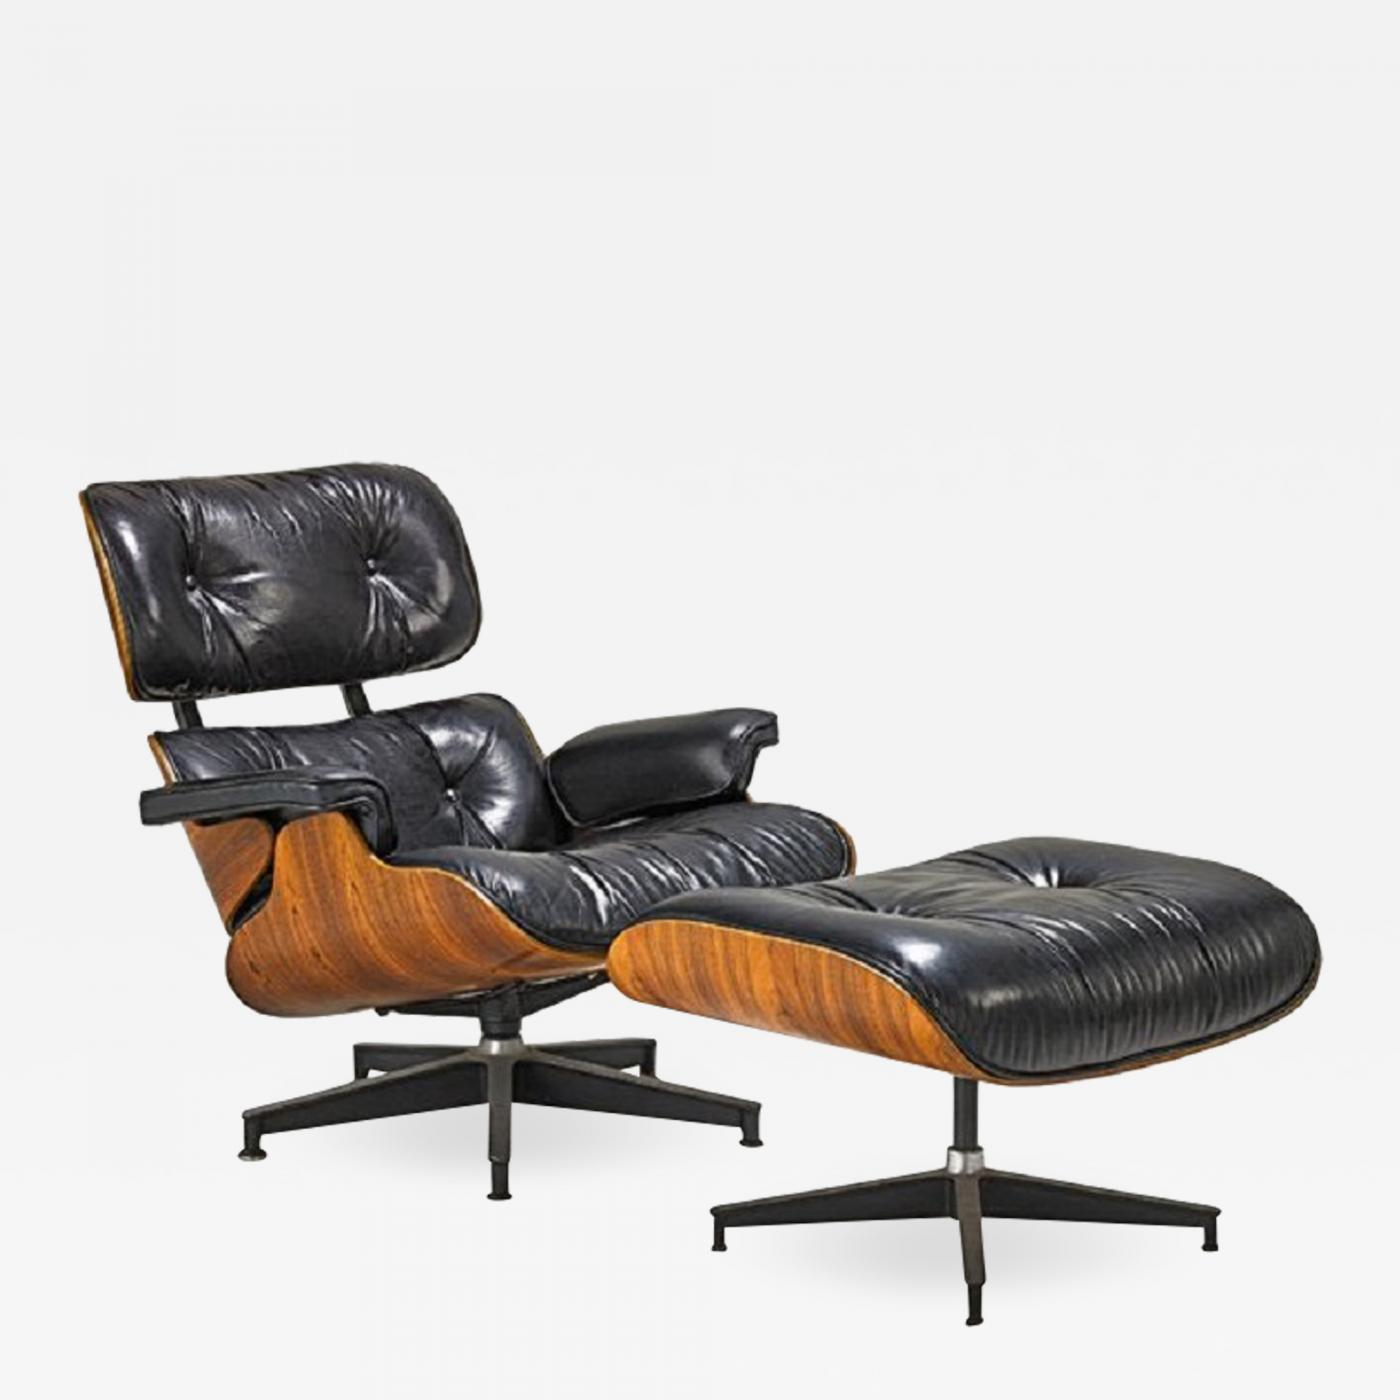 Amazing Charles Ray Eames Charles And Ray Eames Lounge Chair No 670 And 671 Cjindustries Chair Design For Home Cjindustriesco